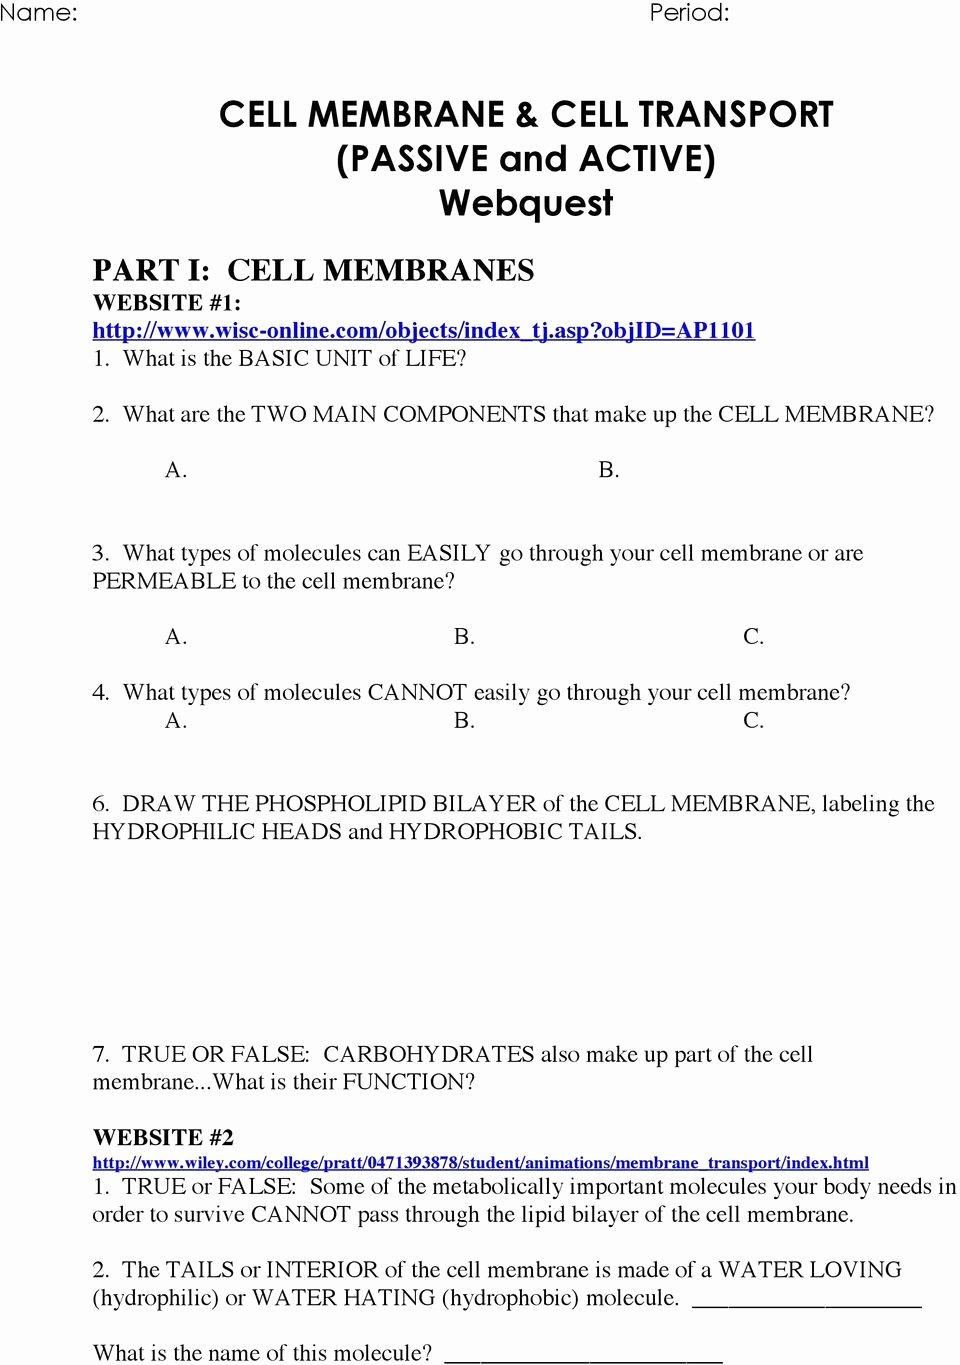 Cell Transport Worksheet Biology Answers Best Of Cell Transport Worksheet Answers Promotiontablecovers